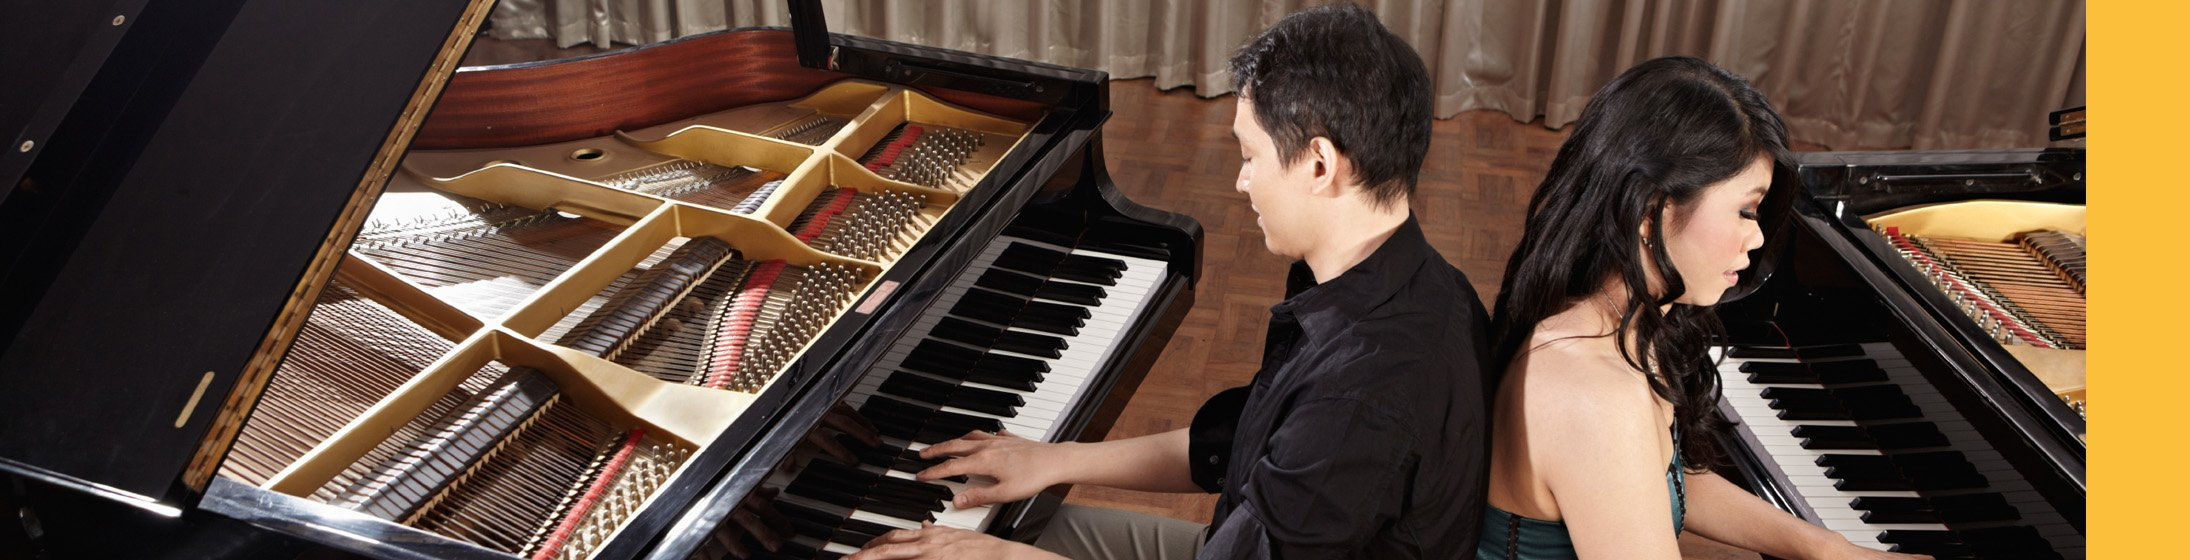 piano-lessons-3